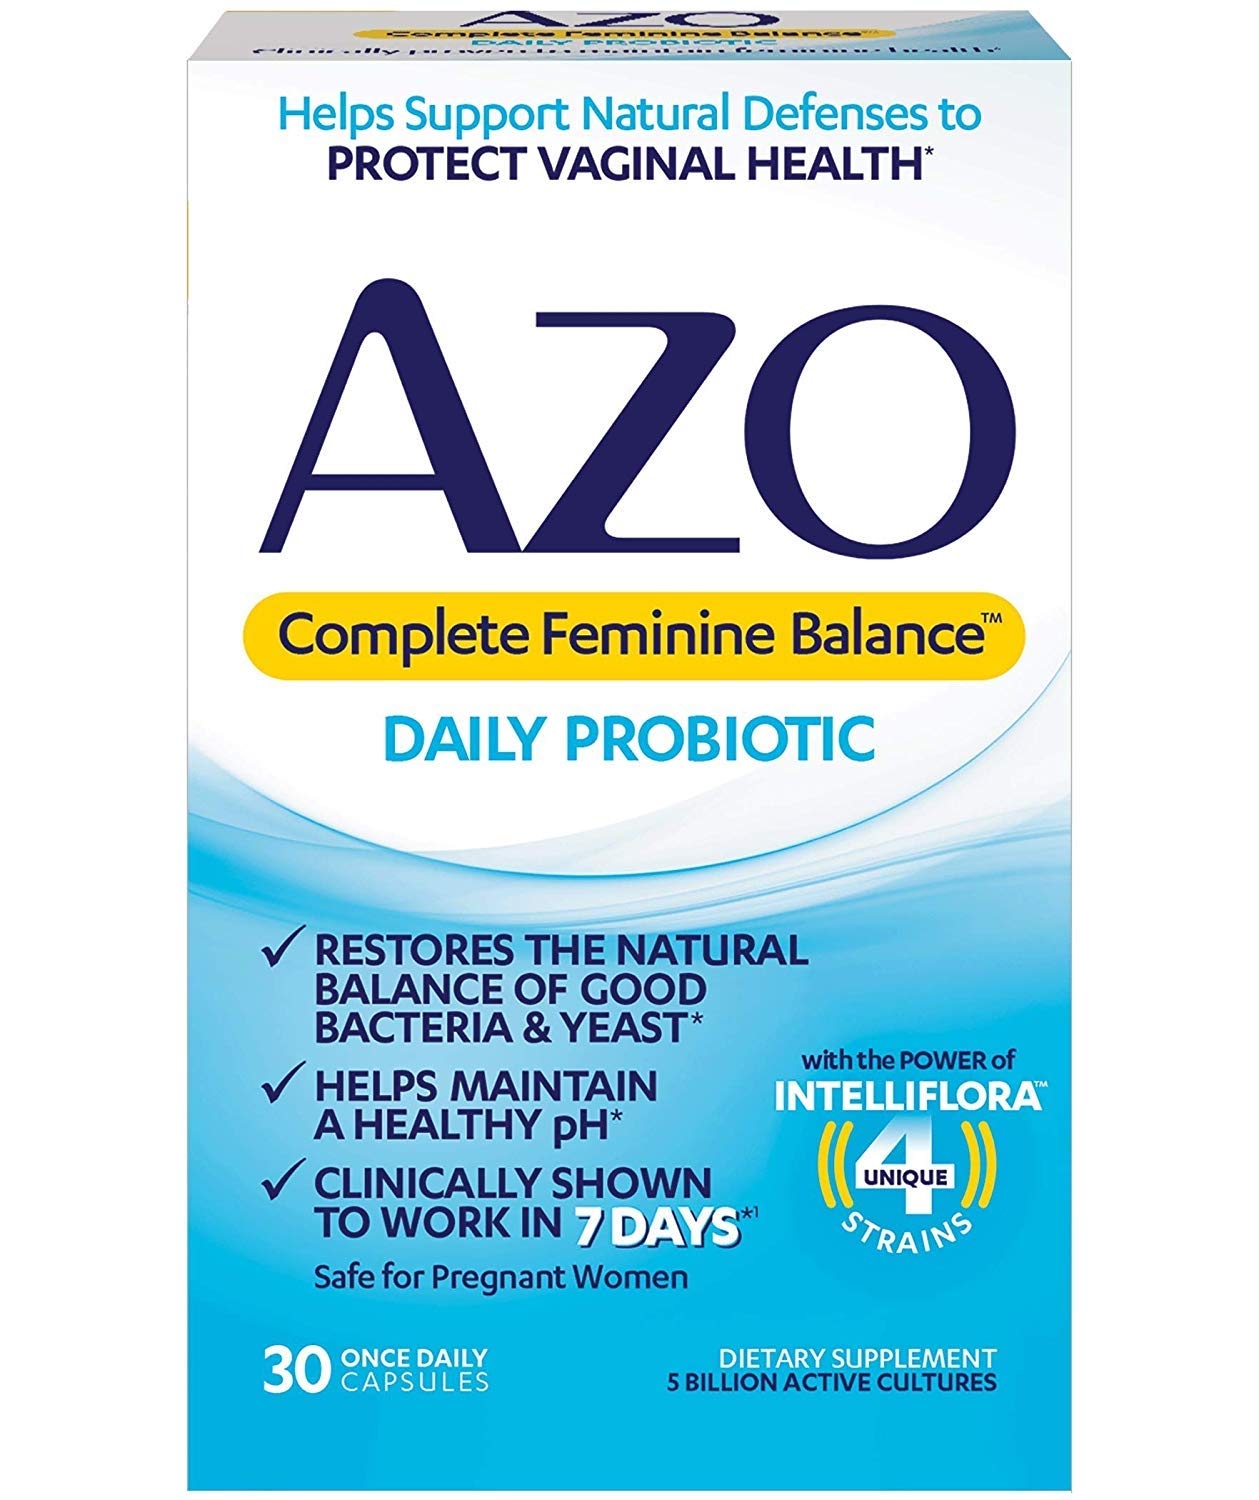 AZO Complete Feminine Balance Women's Daily Probiotic | Clinically Proven to Help Protect Vaginal Health | Clinically Shown to Work in 7 Days* | 84 Count (84 Count)